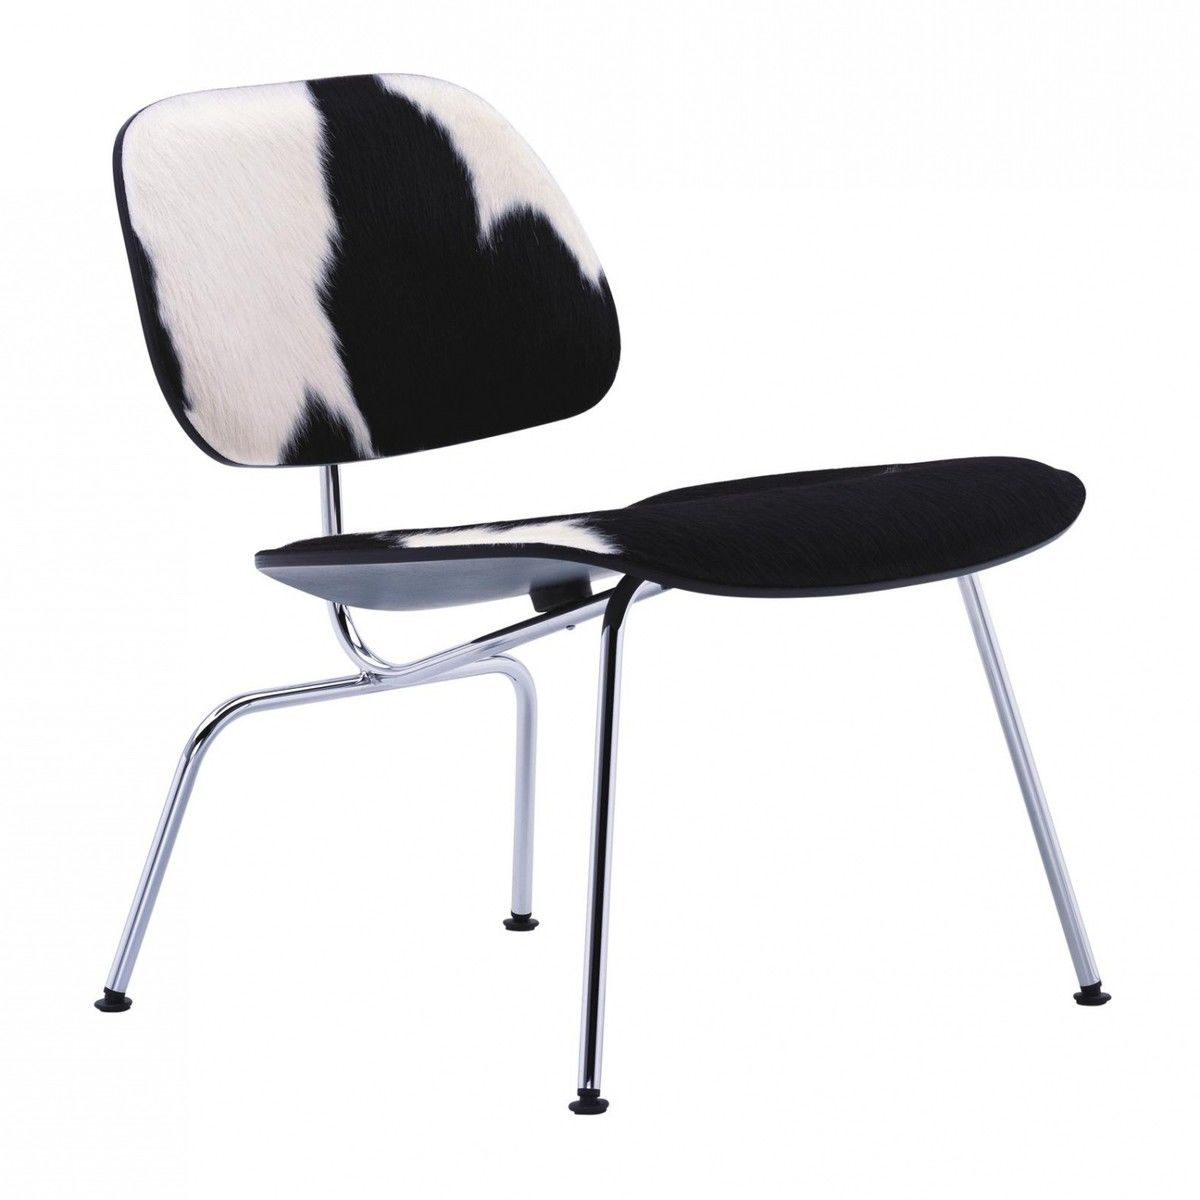 Eames Stuhl Weiß Lcm Eames Stuhl Kuhfell Vitra Charles Eames